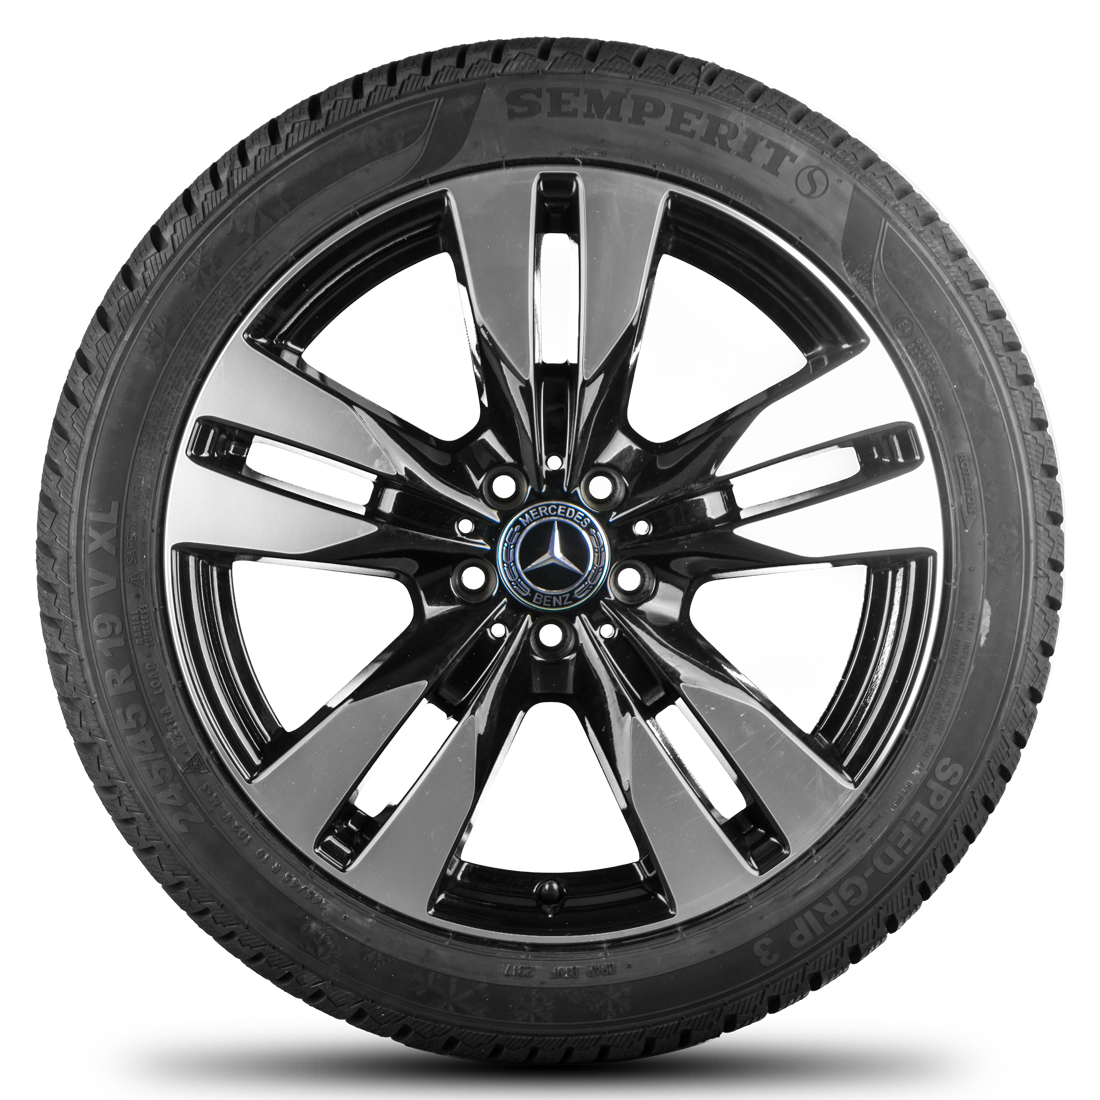 Mercedes benz 19 inch rims v class vito viano w639 winter for Mercedes benz tyres